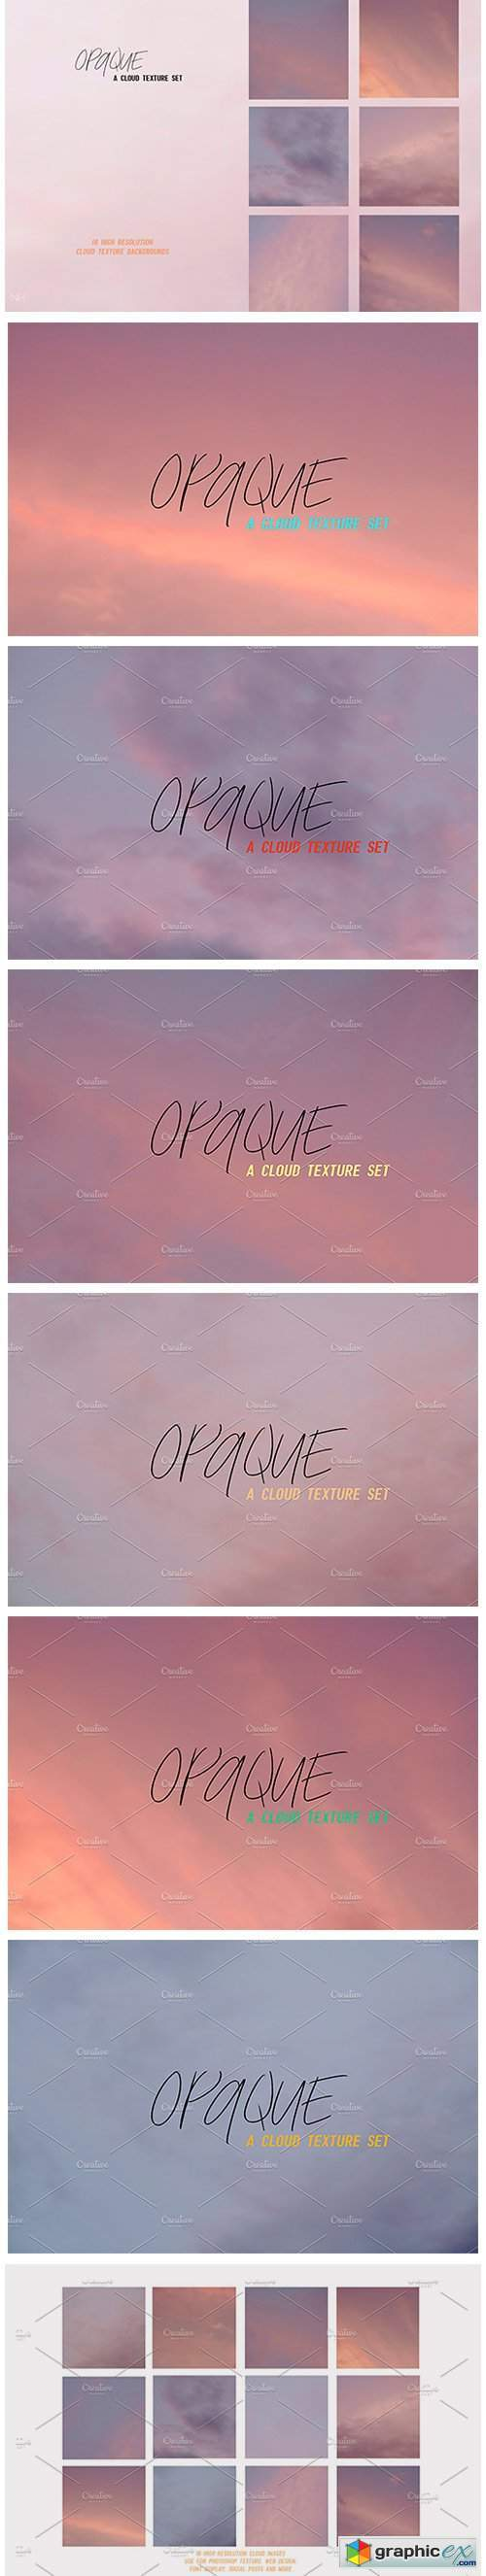 Opaque | Cloud Texture Photo Bundle